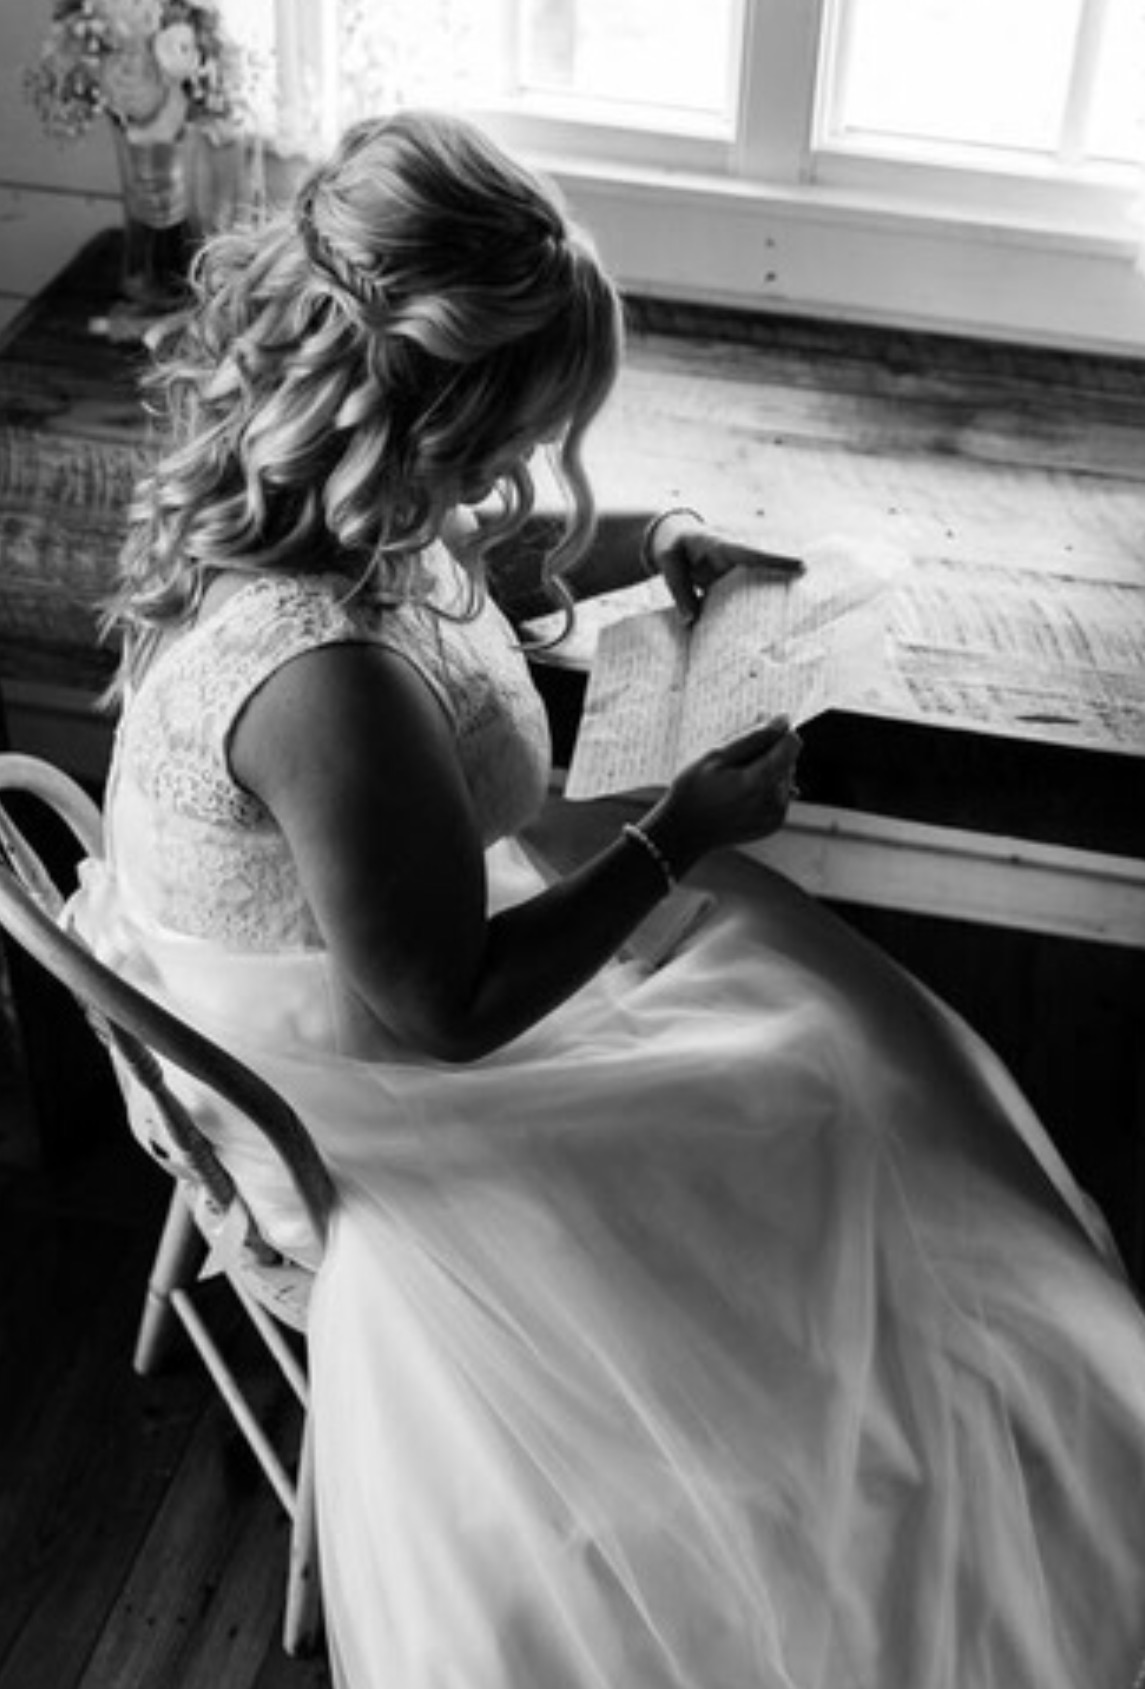 - 6. SWOONING CURLSSOFT CURLS FALL OVER THE BRIDE'S SHOULDERS AS A BRAIDED PIECE COMPLETES THE HALF UP HALF DOWN BRIDAL LOOK....BRIDE: JOANNE KAE MILLERHAIR STYLIST: NATALIE BESINGER AT SMOAK SALONPHOTOGRAPHER: MATT NELSON & KATIE FRASSINELLI MILLICAN